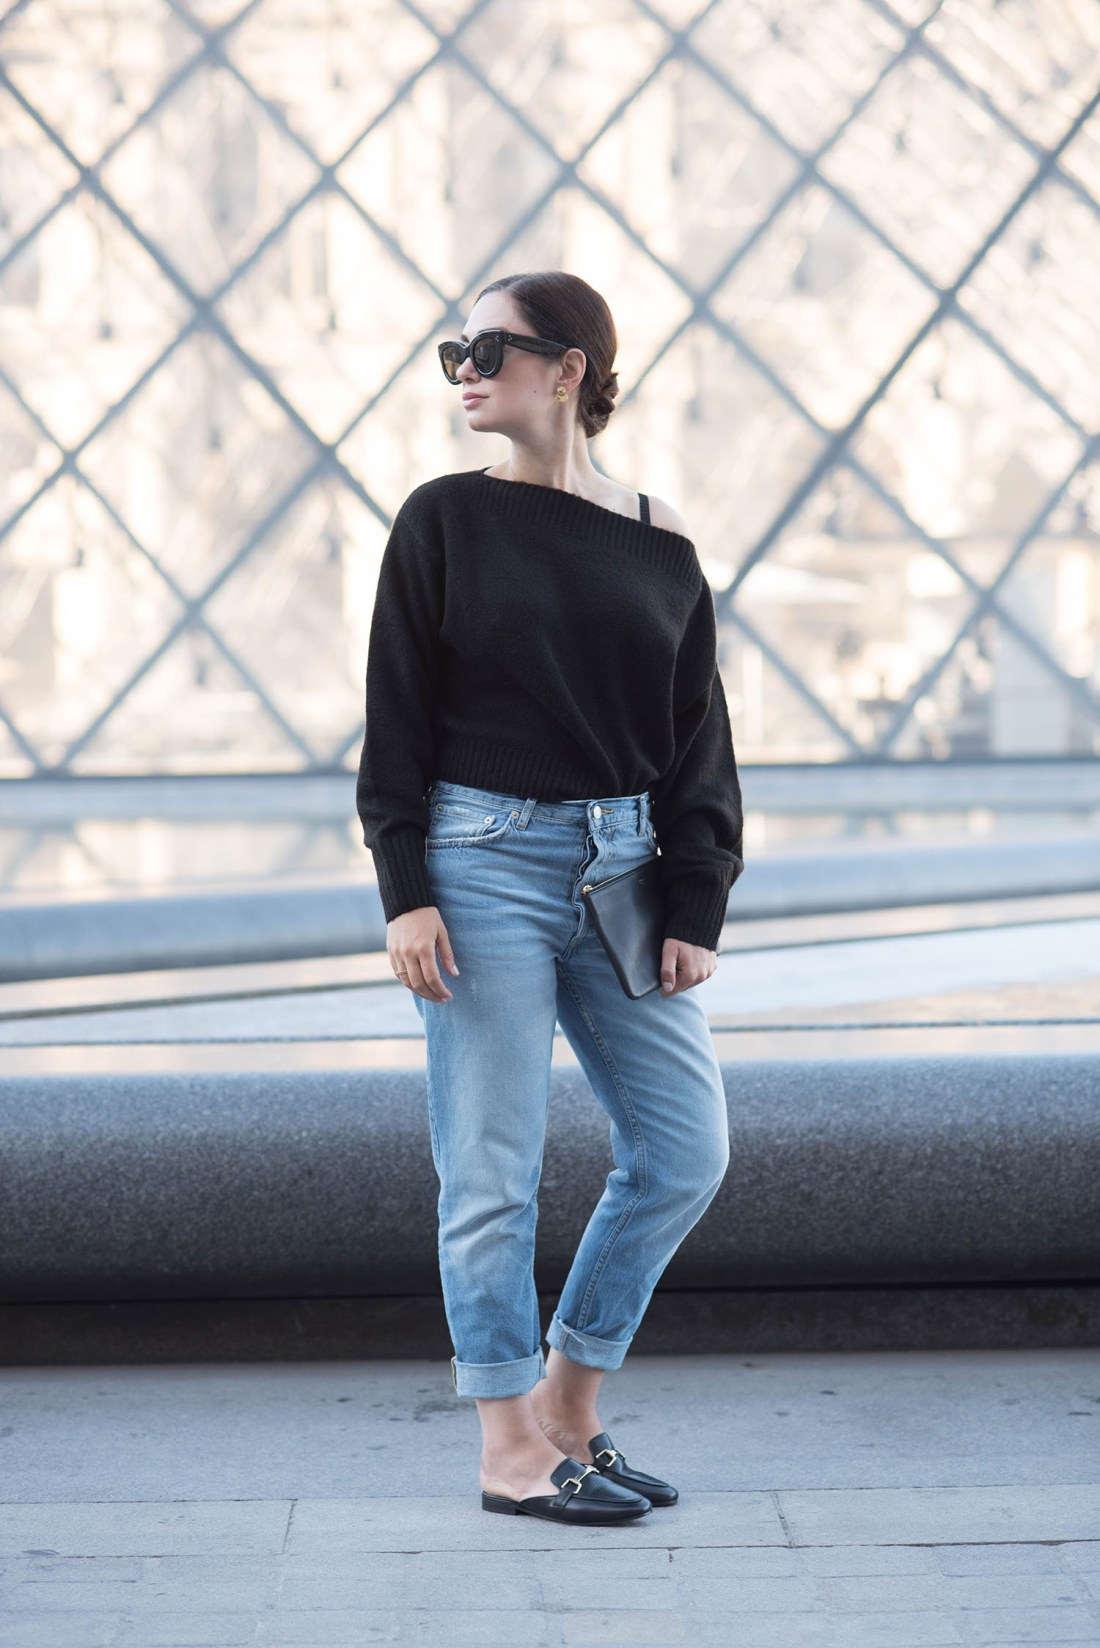 Winnipeg fashion blogger Cee Fardoe of Coco & Vera outside the Louvre museum in Paris wearing a sweater from & Other Stories and Jonak mules